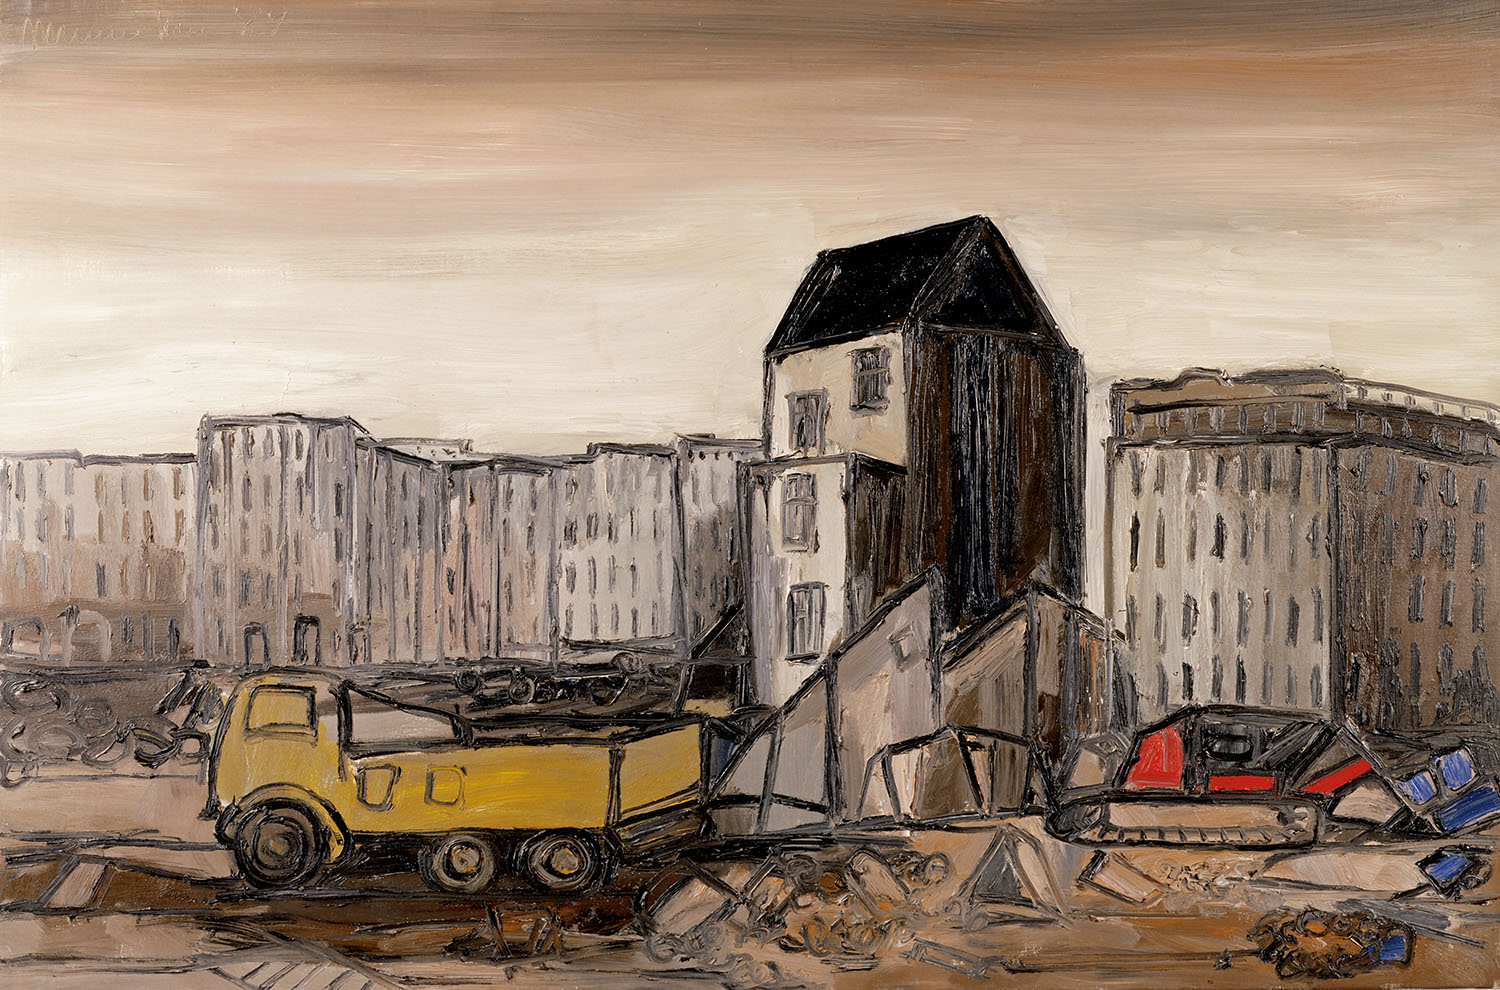 Paris, 1989, oil on canvas, cm 97 x 146